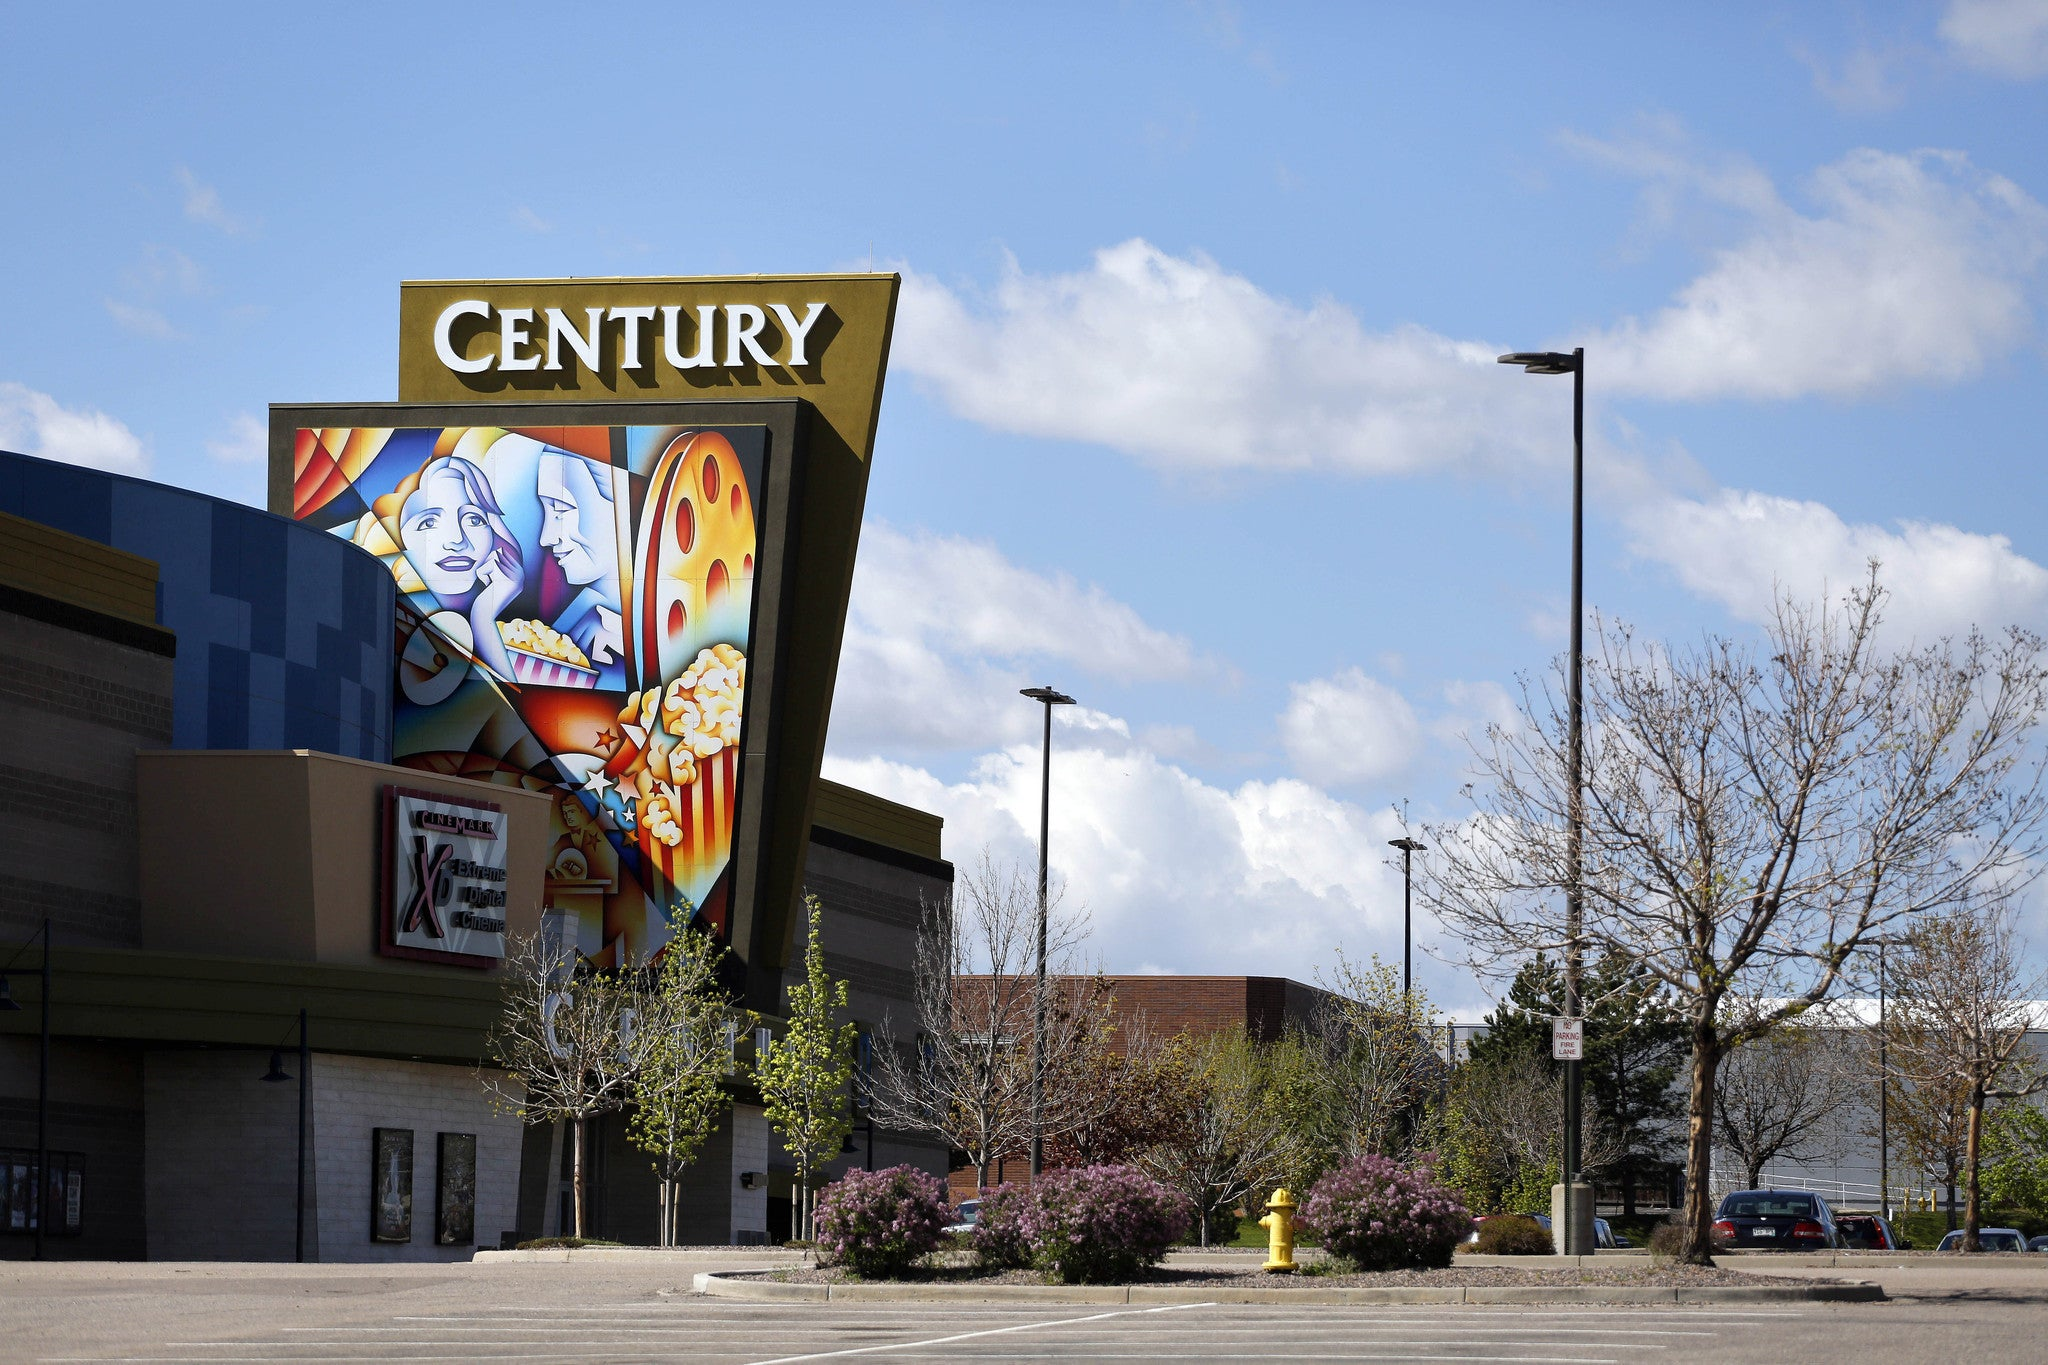 Cinemark - latest news, breaking stories and comment - The